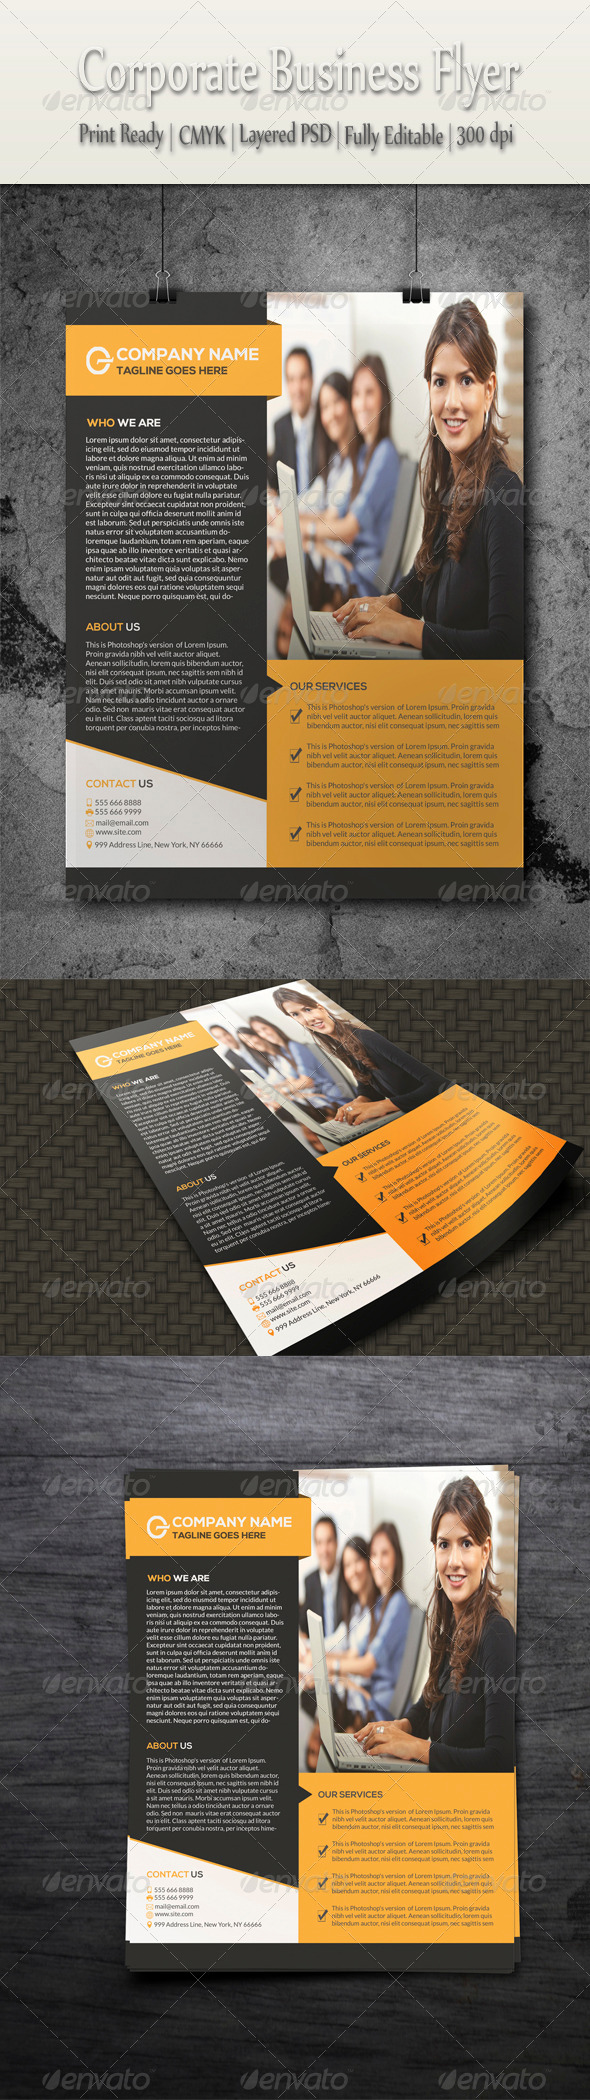 GraphicRiver Corporate Business Flyer 8541250